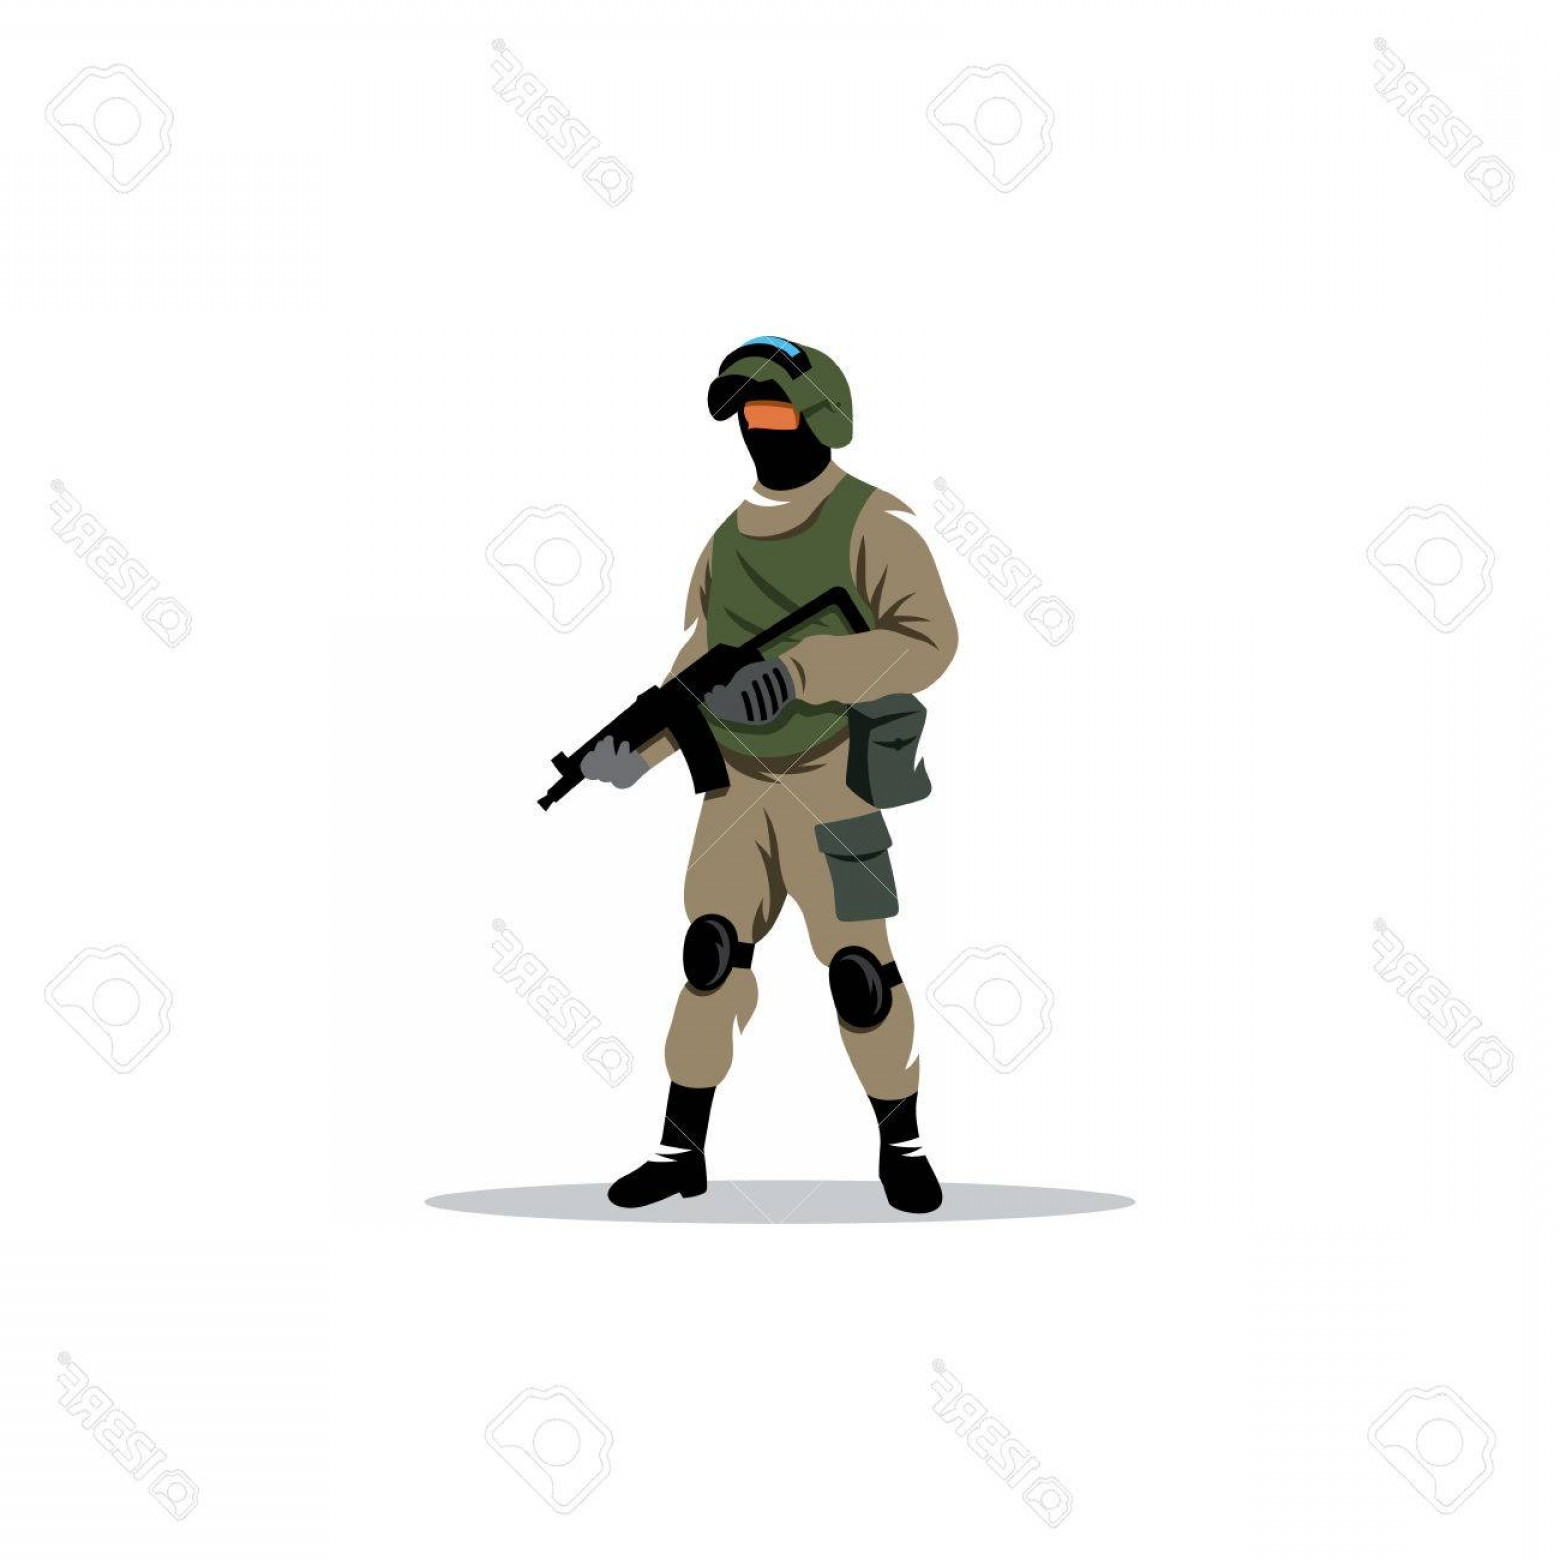 Us Special Forces Vector Files: Photostock Vector Man In Military Equipment For Special Operations